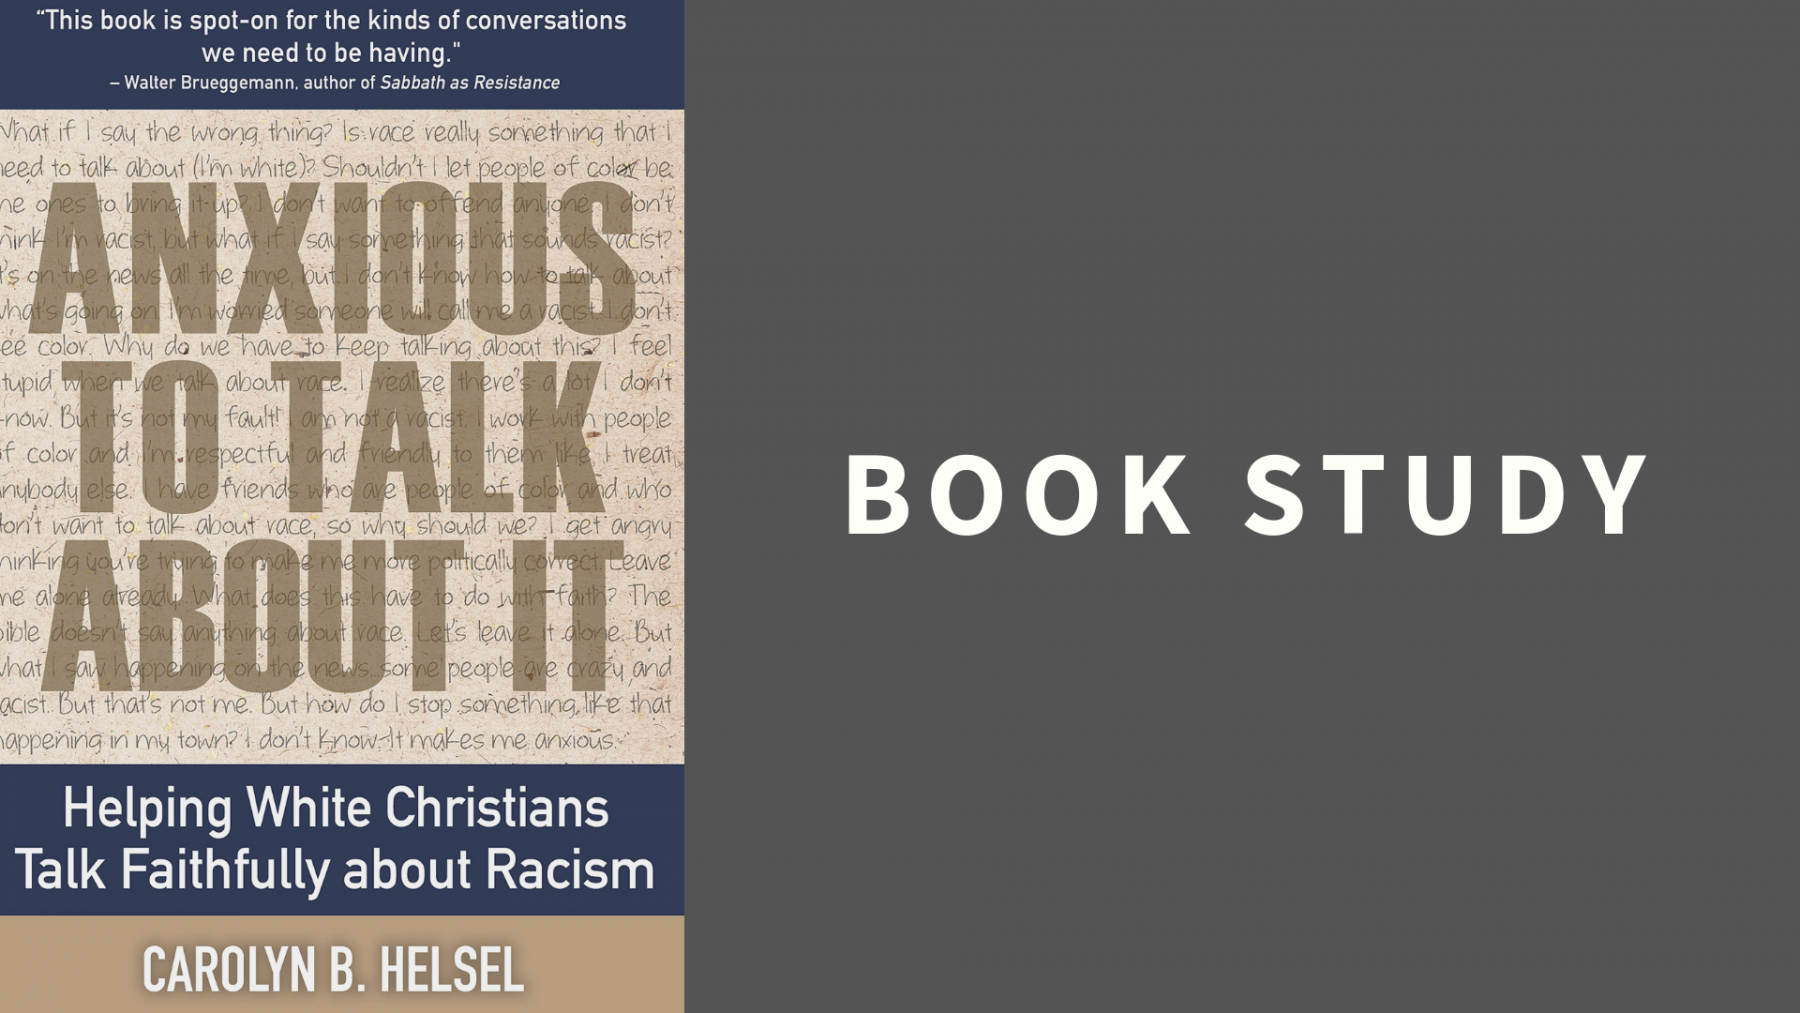 Book Study: Anxious to Talk About It: Helping White Christians Talk Faithfully about Racism